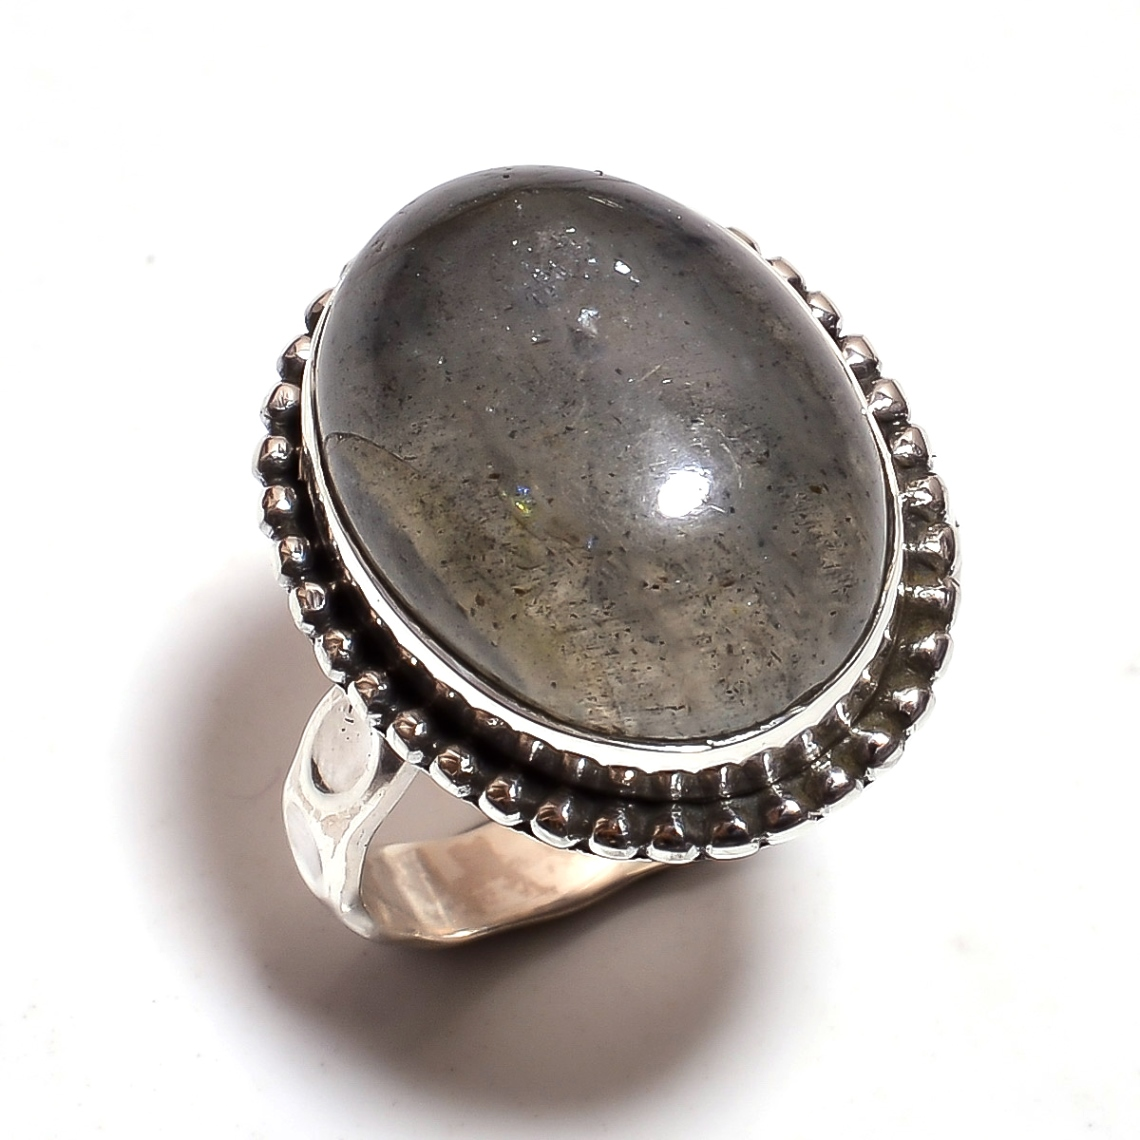 Labradortie Gemstone 925 Sterling Silver Hammered Ring Size 6.25